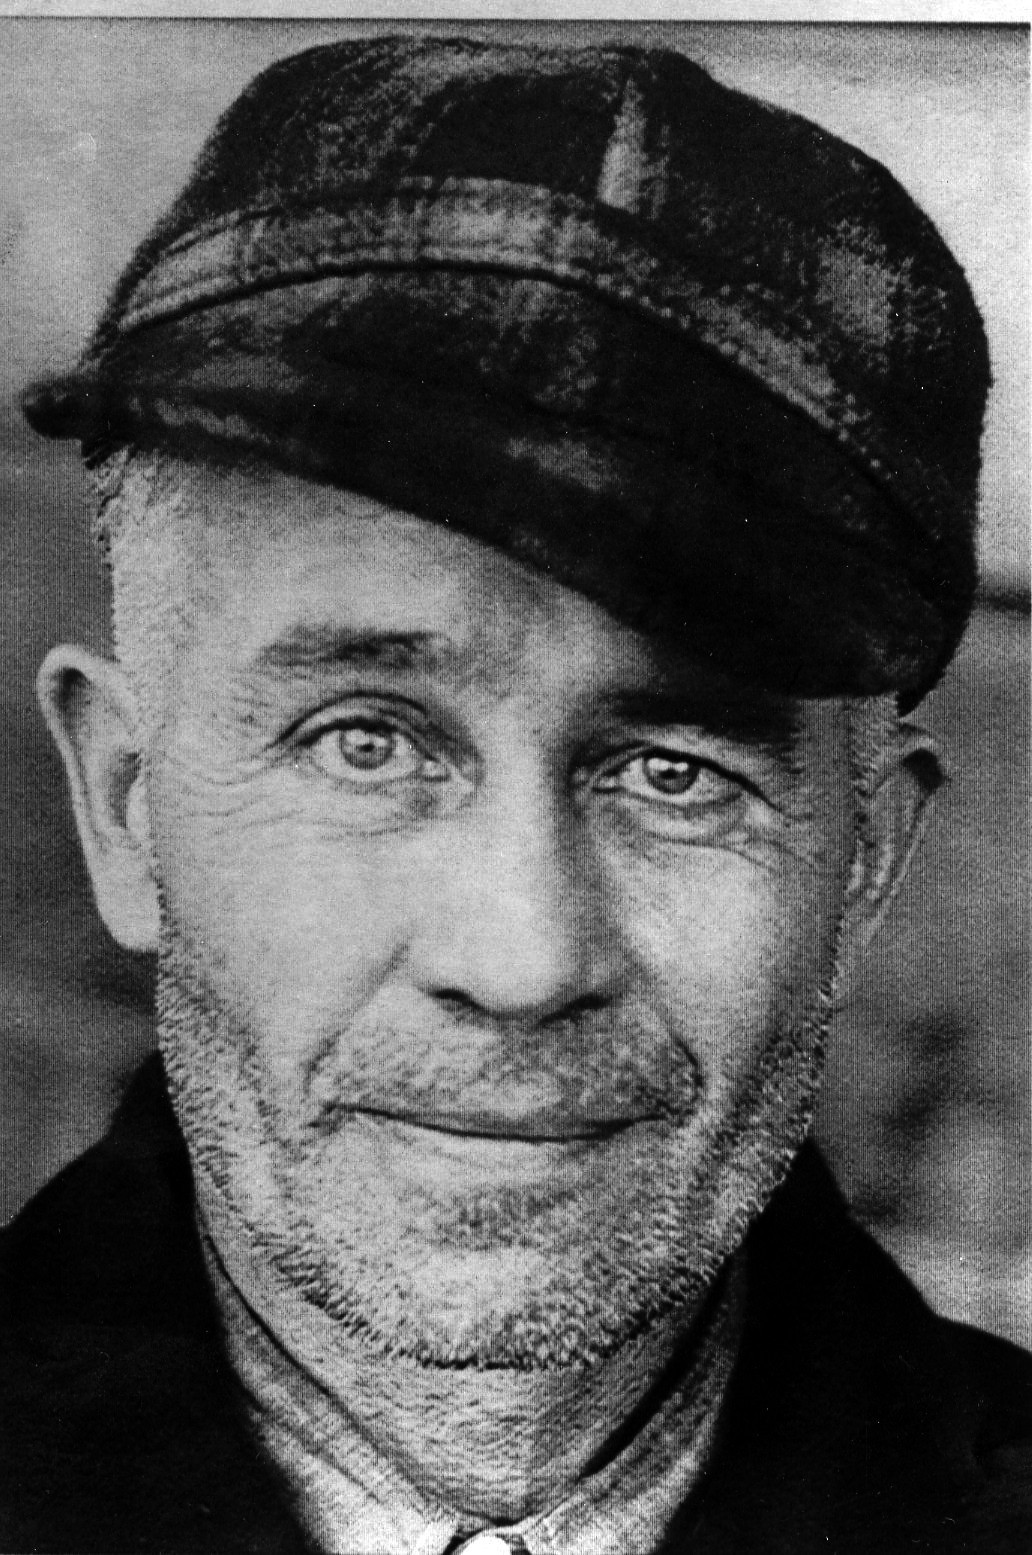 ed gein � serial killer cannibal transexual or none of